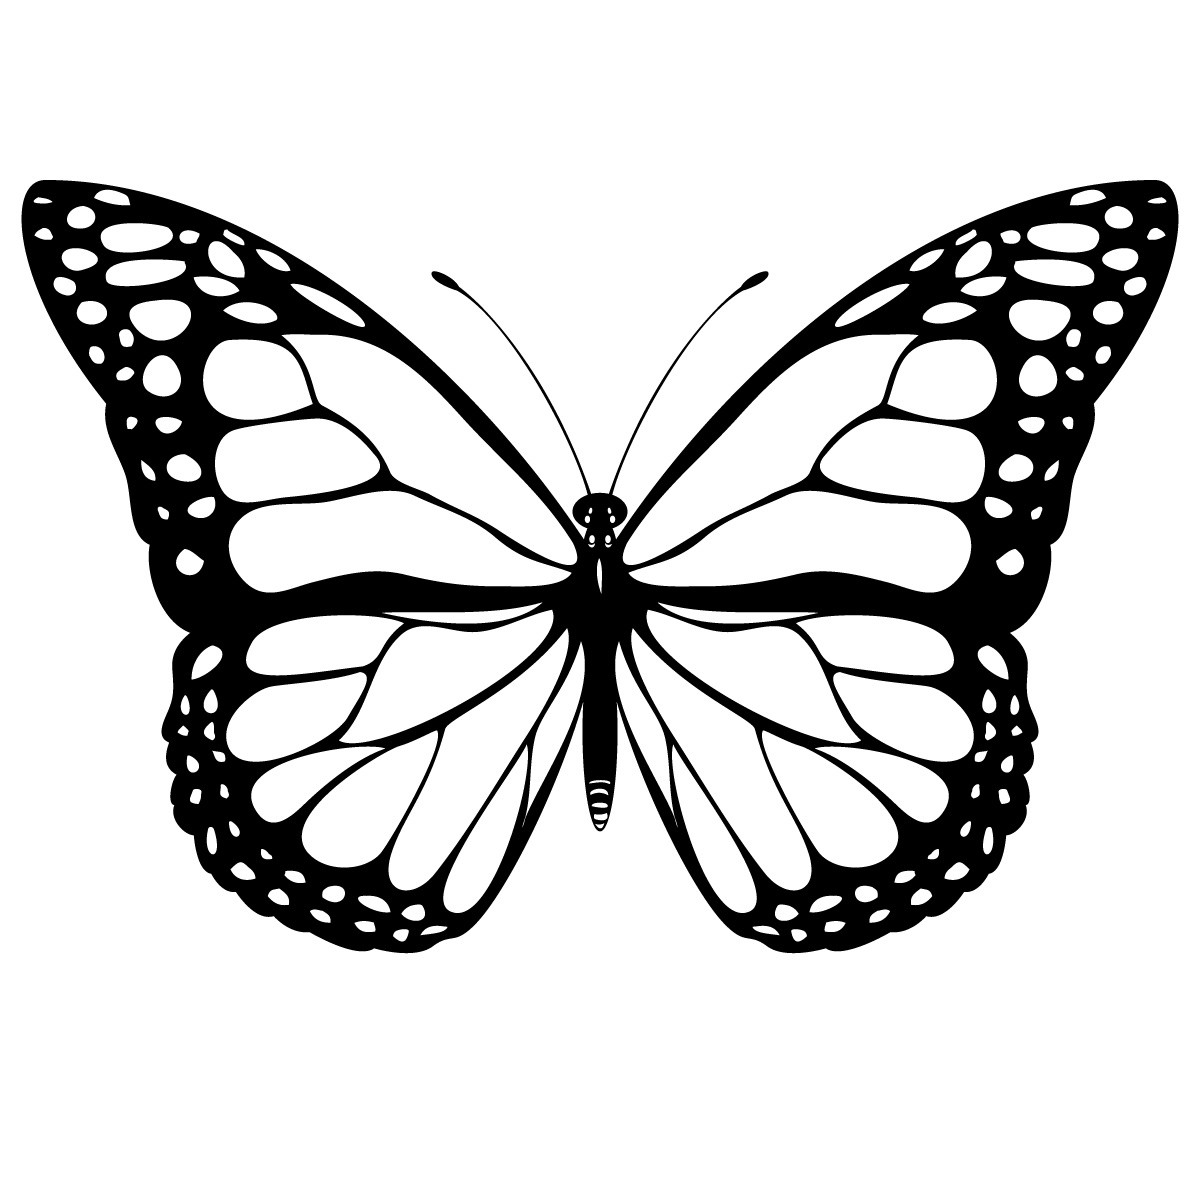 coloring pages with butterflies free printable butterfly coloring pages for kids with pages butterflies coloring